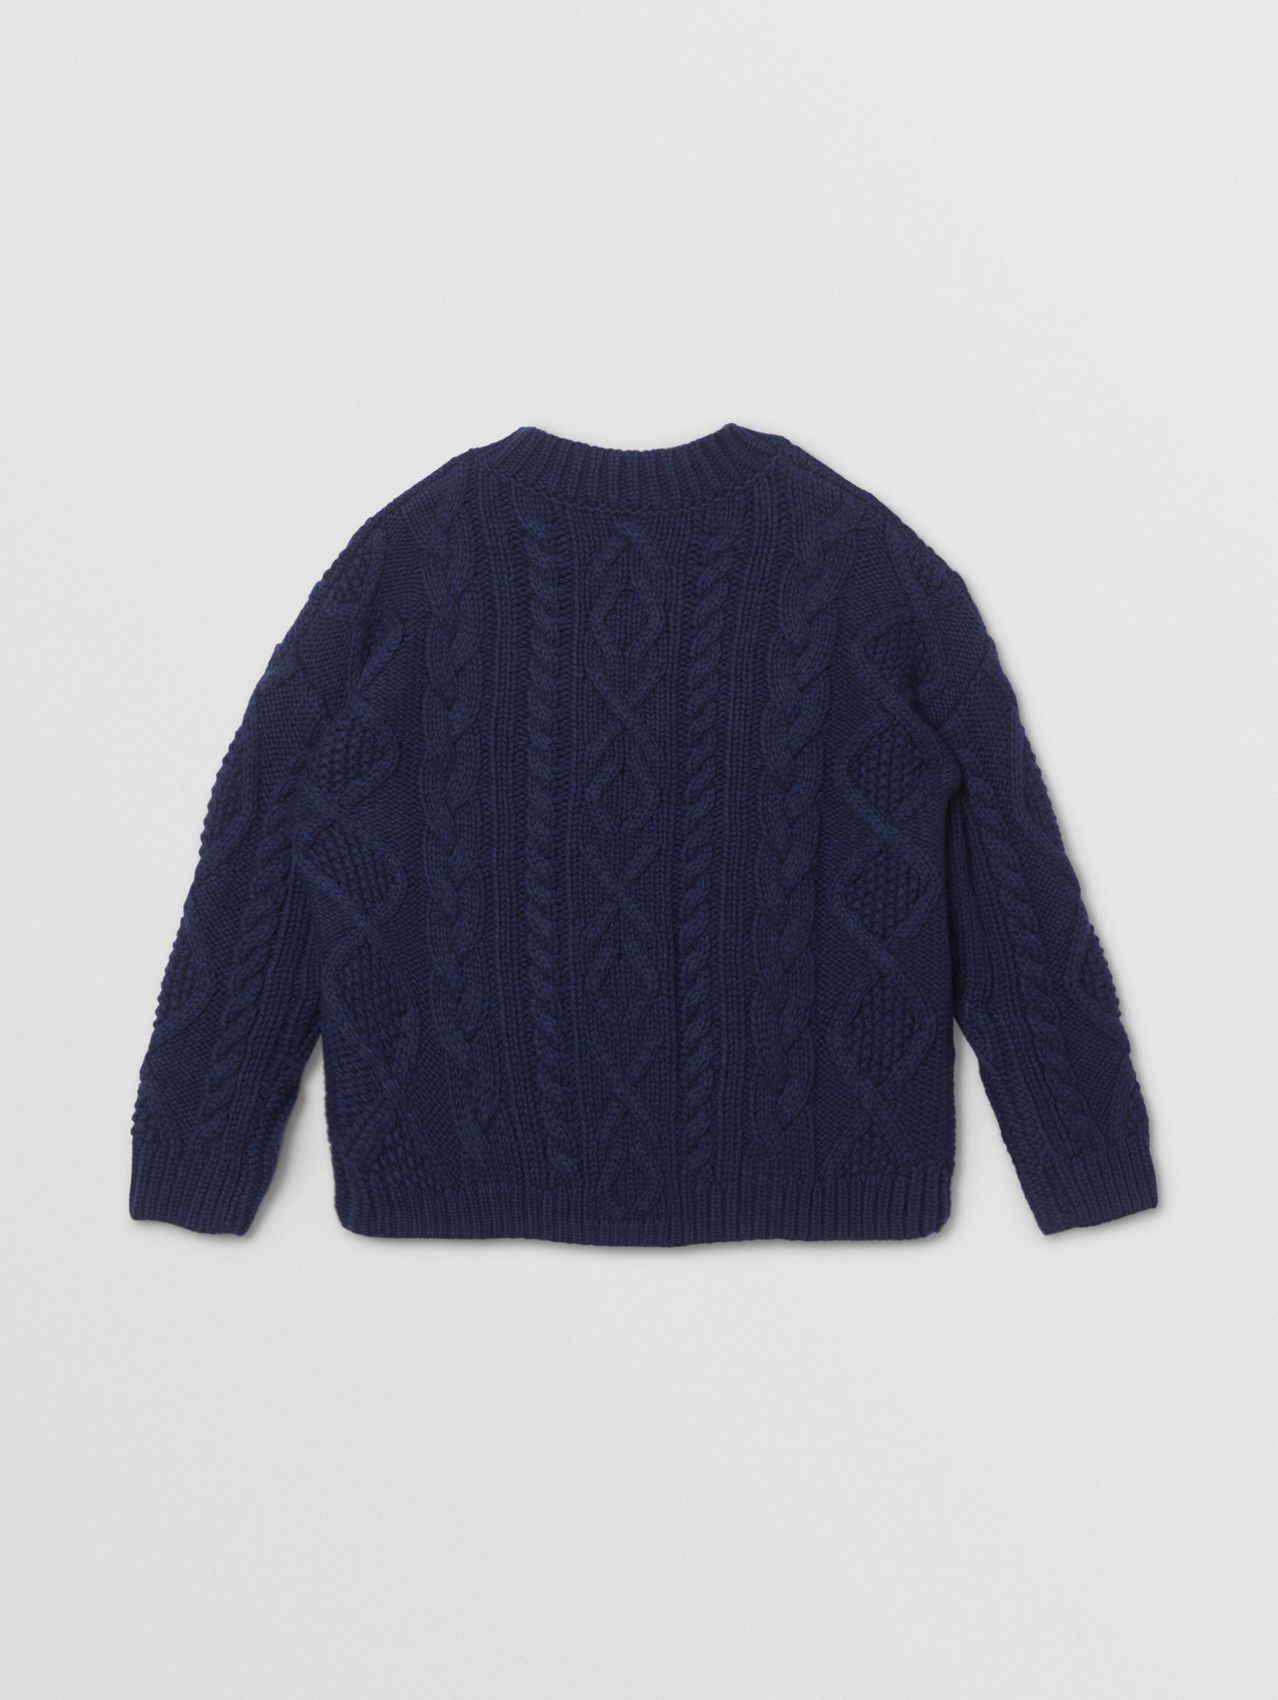 Logo Panel Cable Knit Wool Cashmere Sweater in Navy